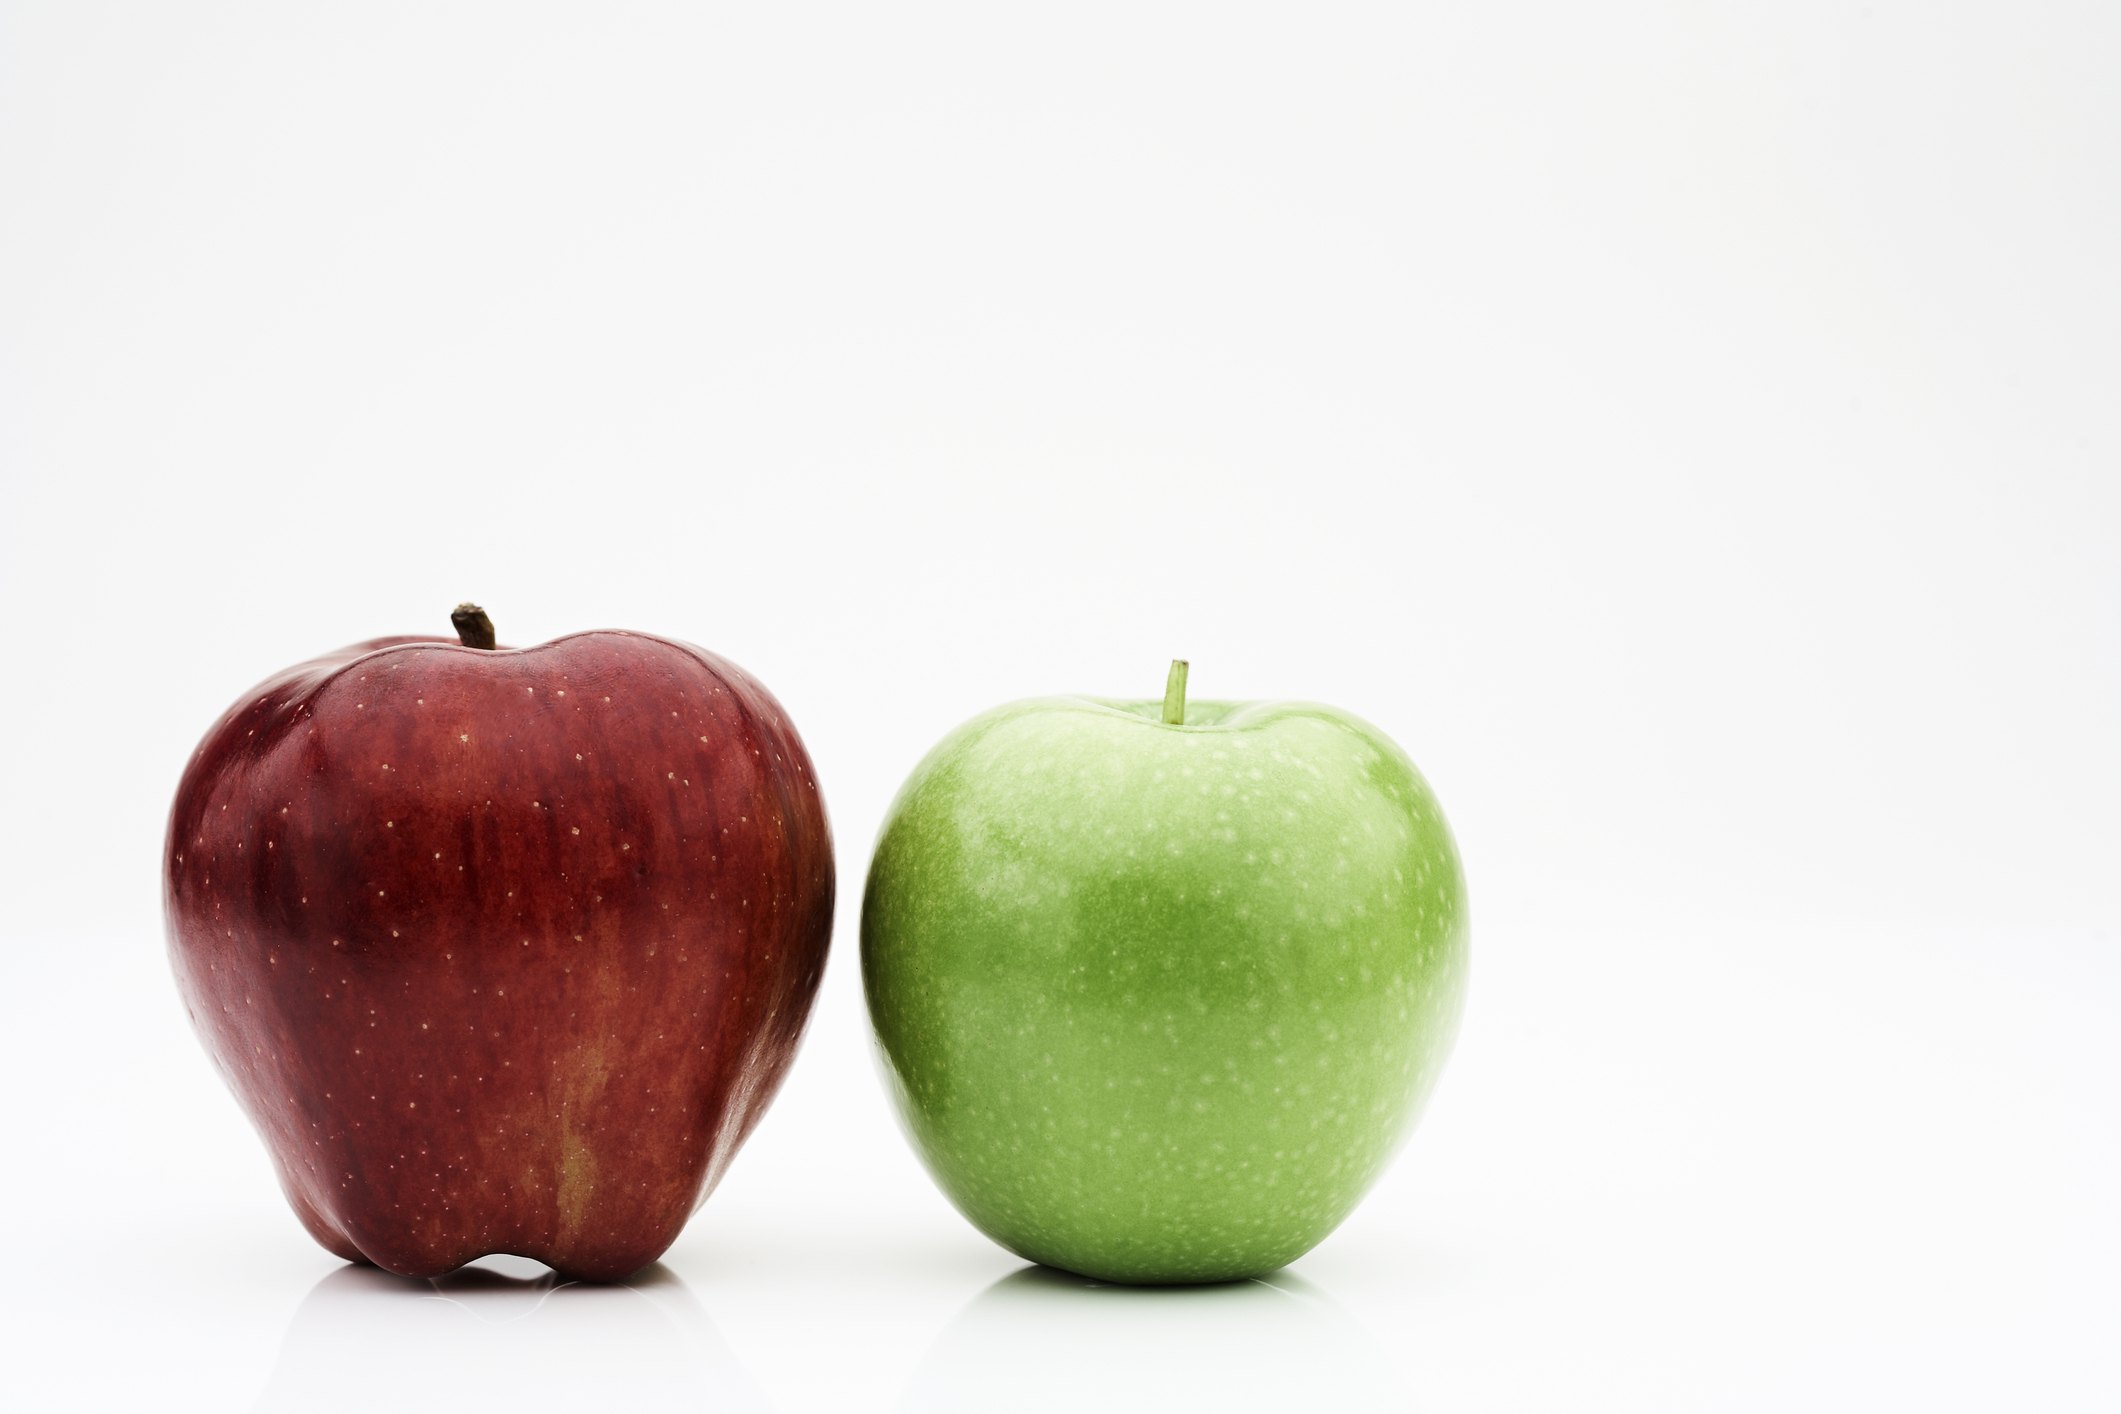 Red and green apple, side by side